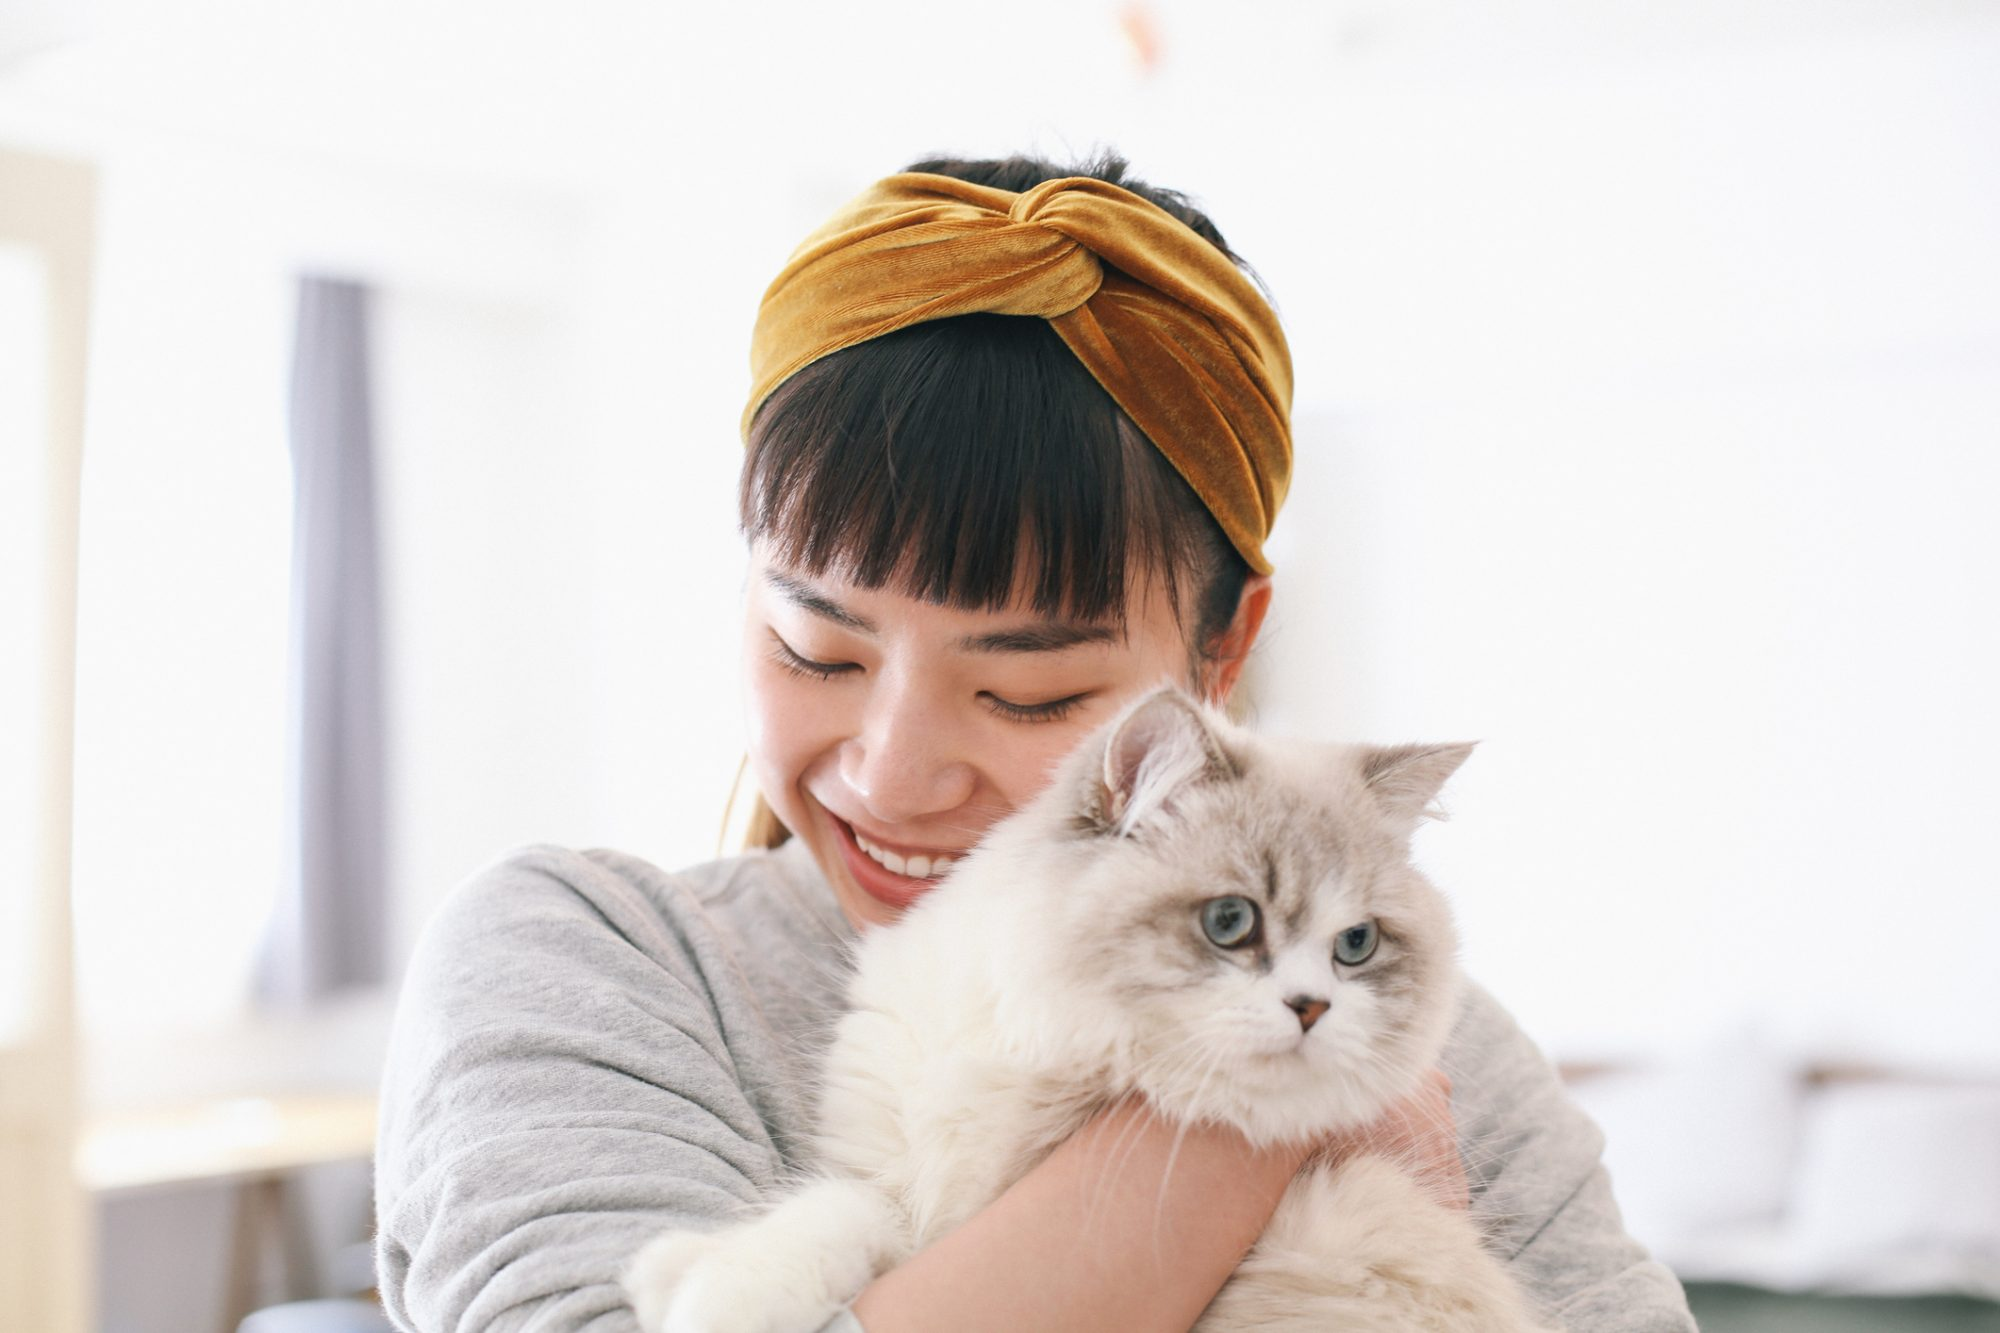 woman and cat snuggling